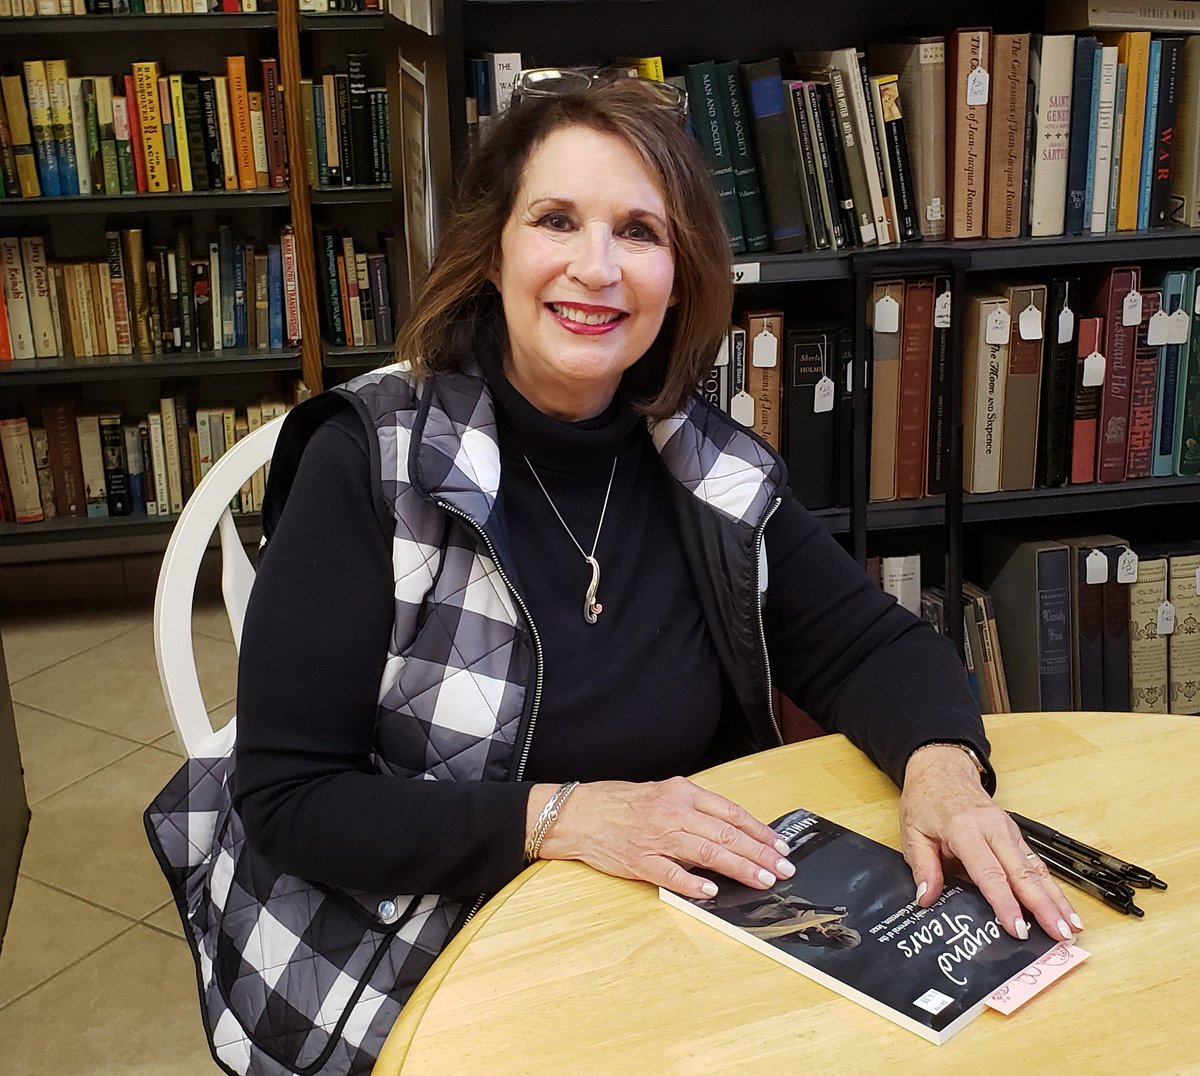 Kathleen Steele is here for the signing. The book is Beyond Tears, the experience of one family in the 1900 Storm in Galveston, based on a true story. Until 4 today.